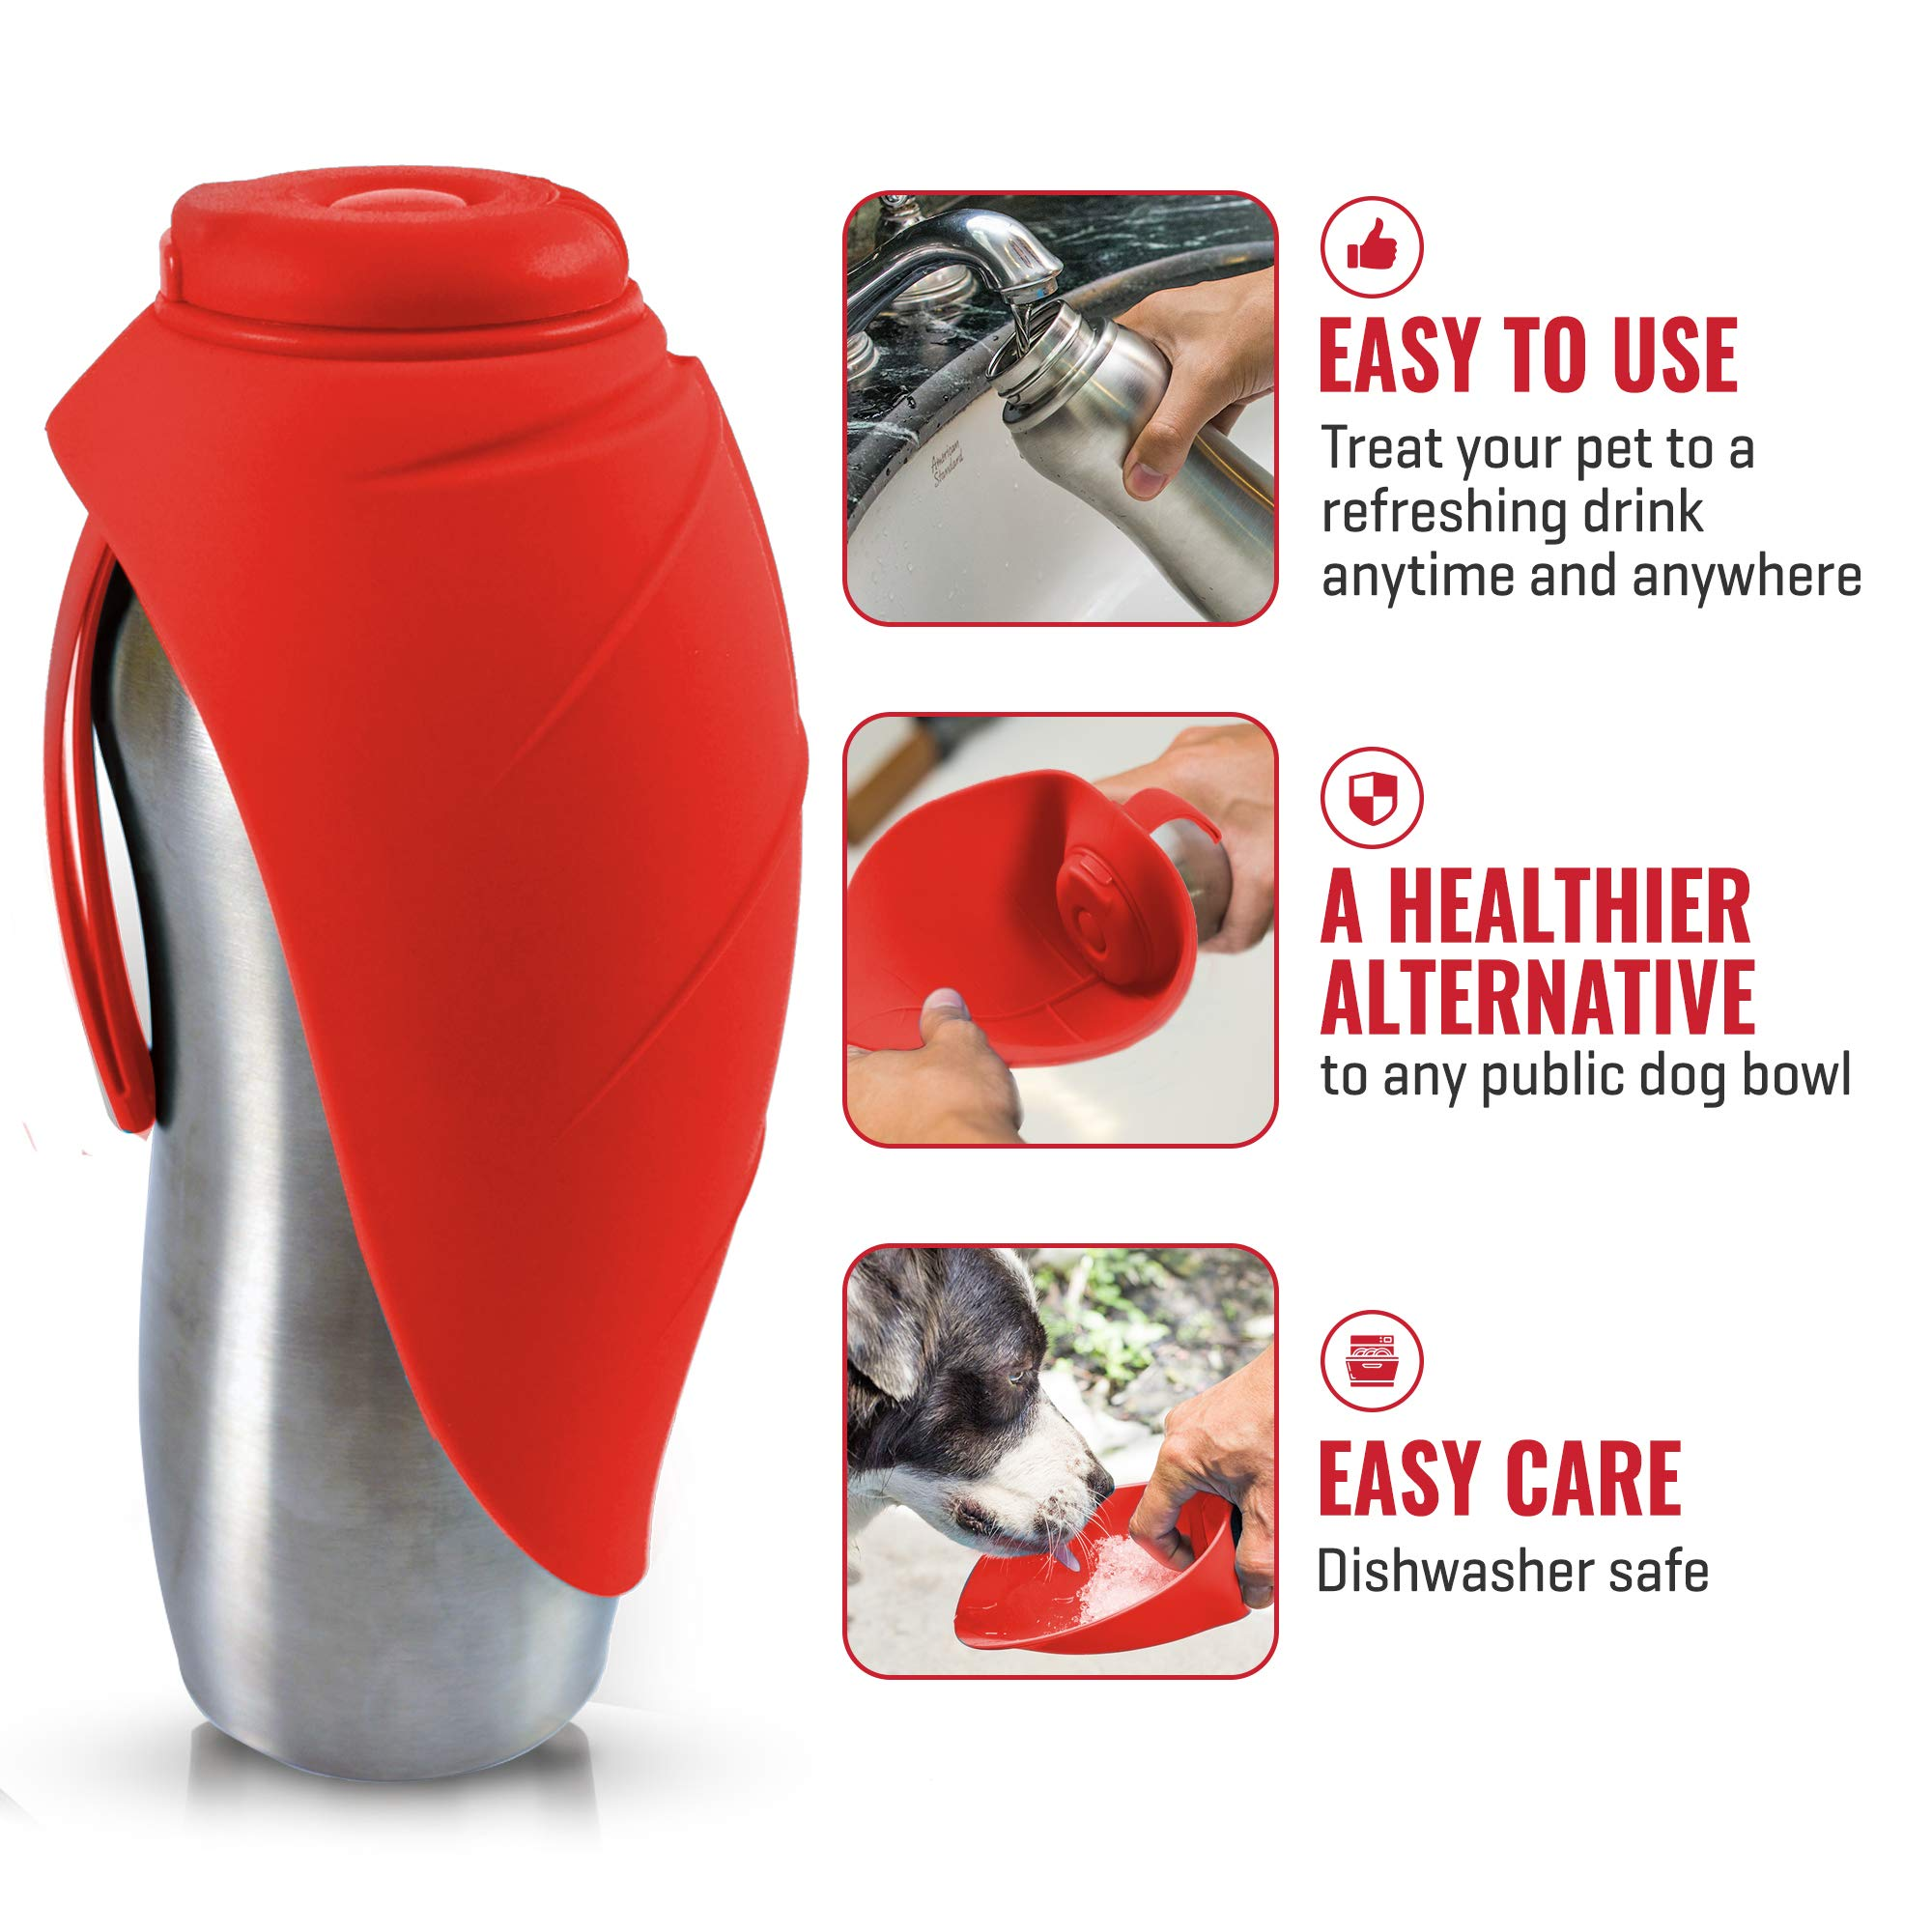 PupFlask Portable Water Bottle For Walking | 24 OZ Stainless Steel | Convenient Dog Travel Water Bottle Keeps Pup Hydrated | Portable Dog Water Bowl & Travel Water Bottle For Dogs (Quetzal Green) by Tuff Pupper (Image #3)